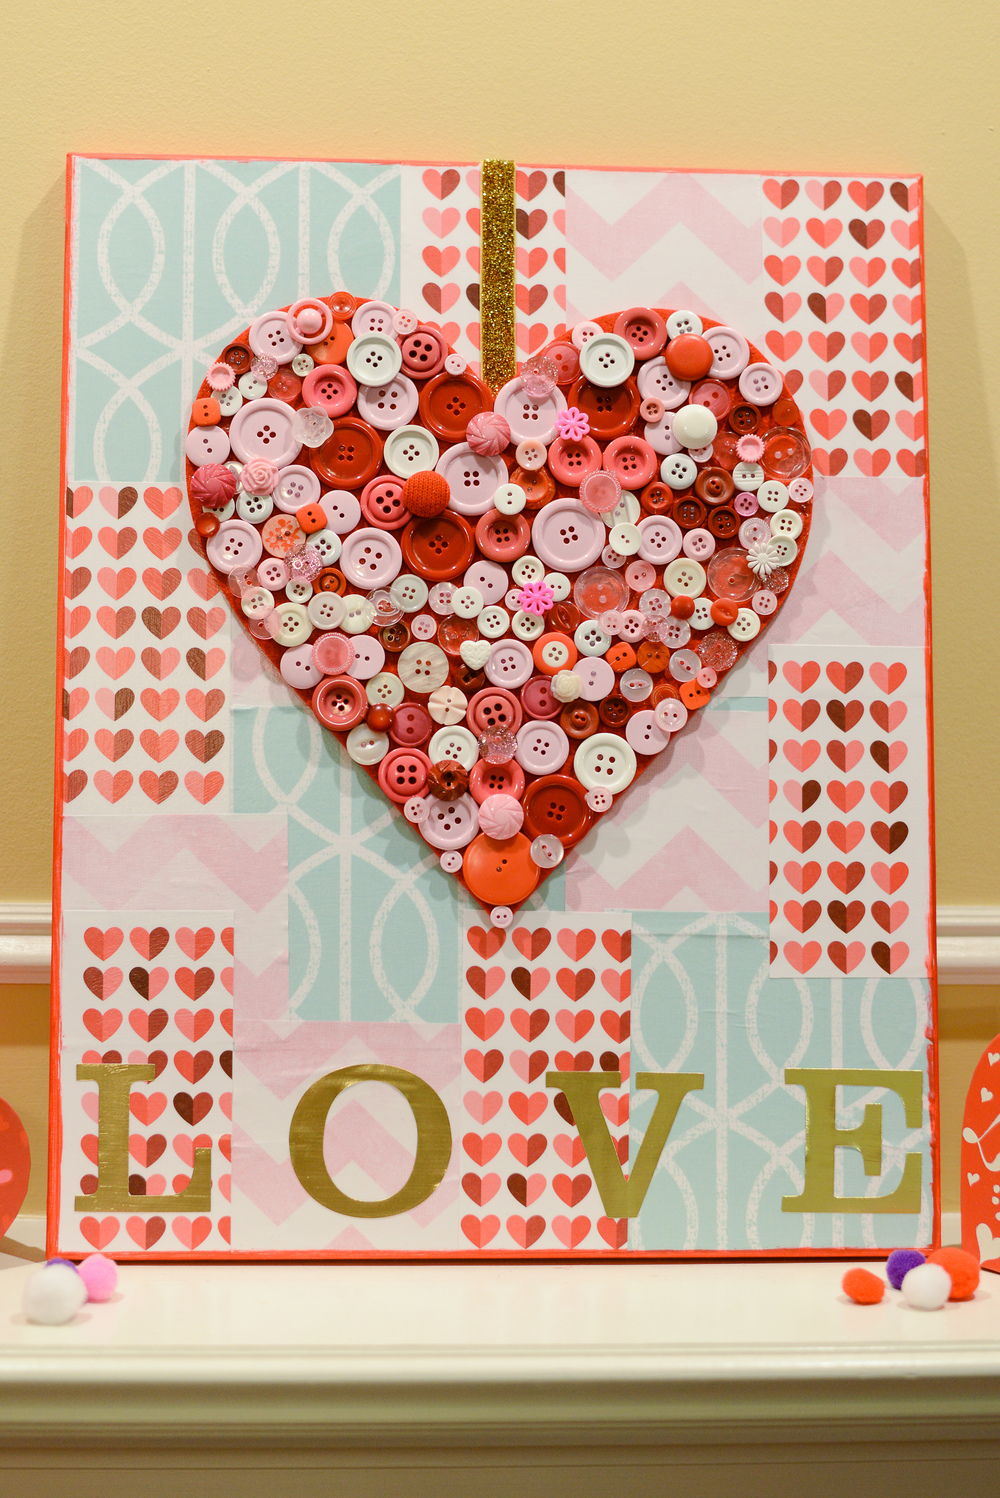 'LOVE' Valentine's Day mambiSHEETS canvas by mambi Design Team member Latrice Murphy | me & my BIG ideas